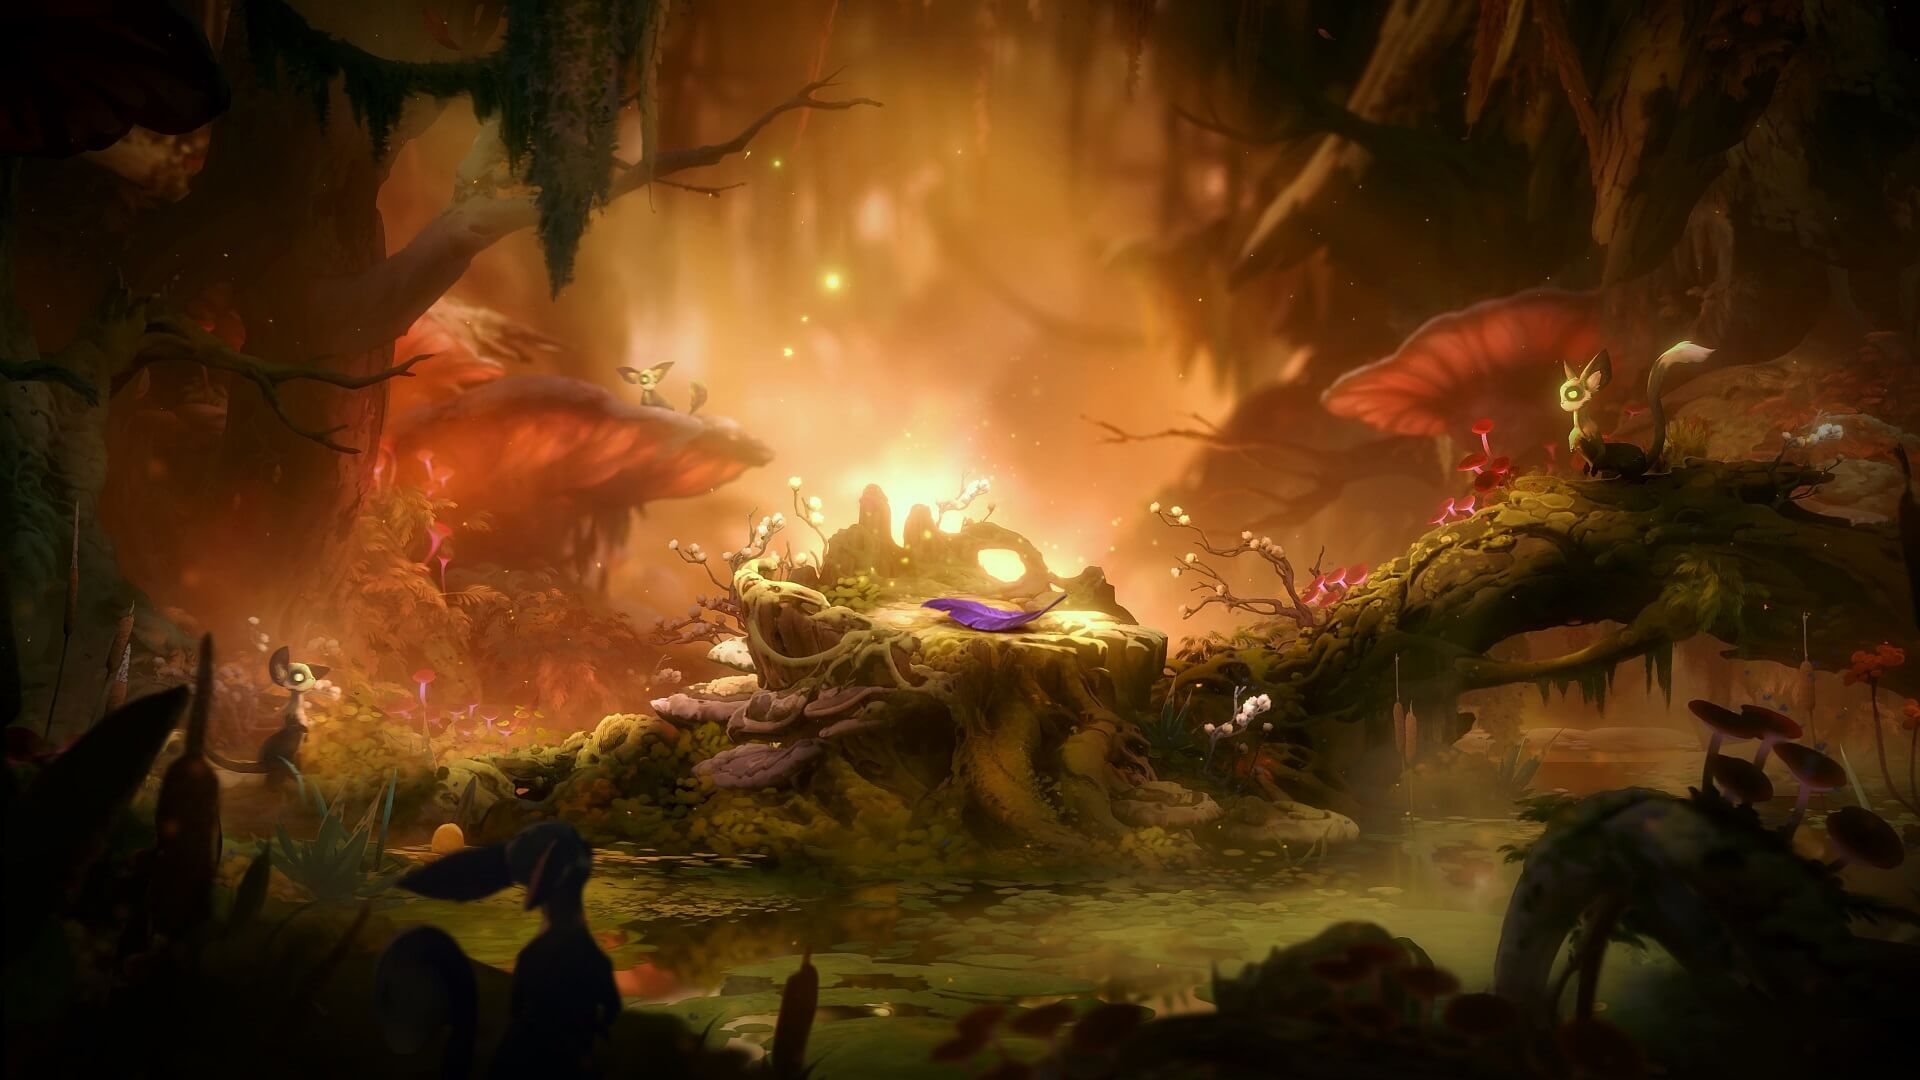 Ori and the Will of the Wisps will feature a new mode geared